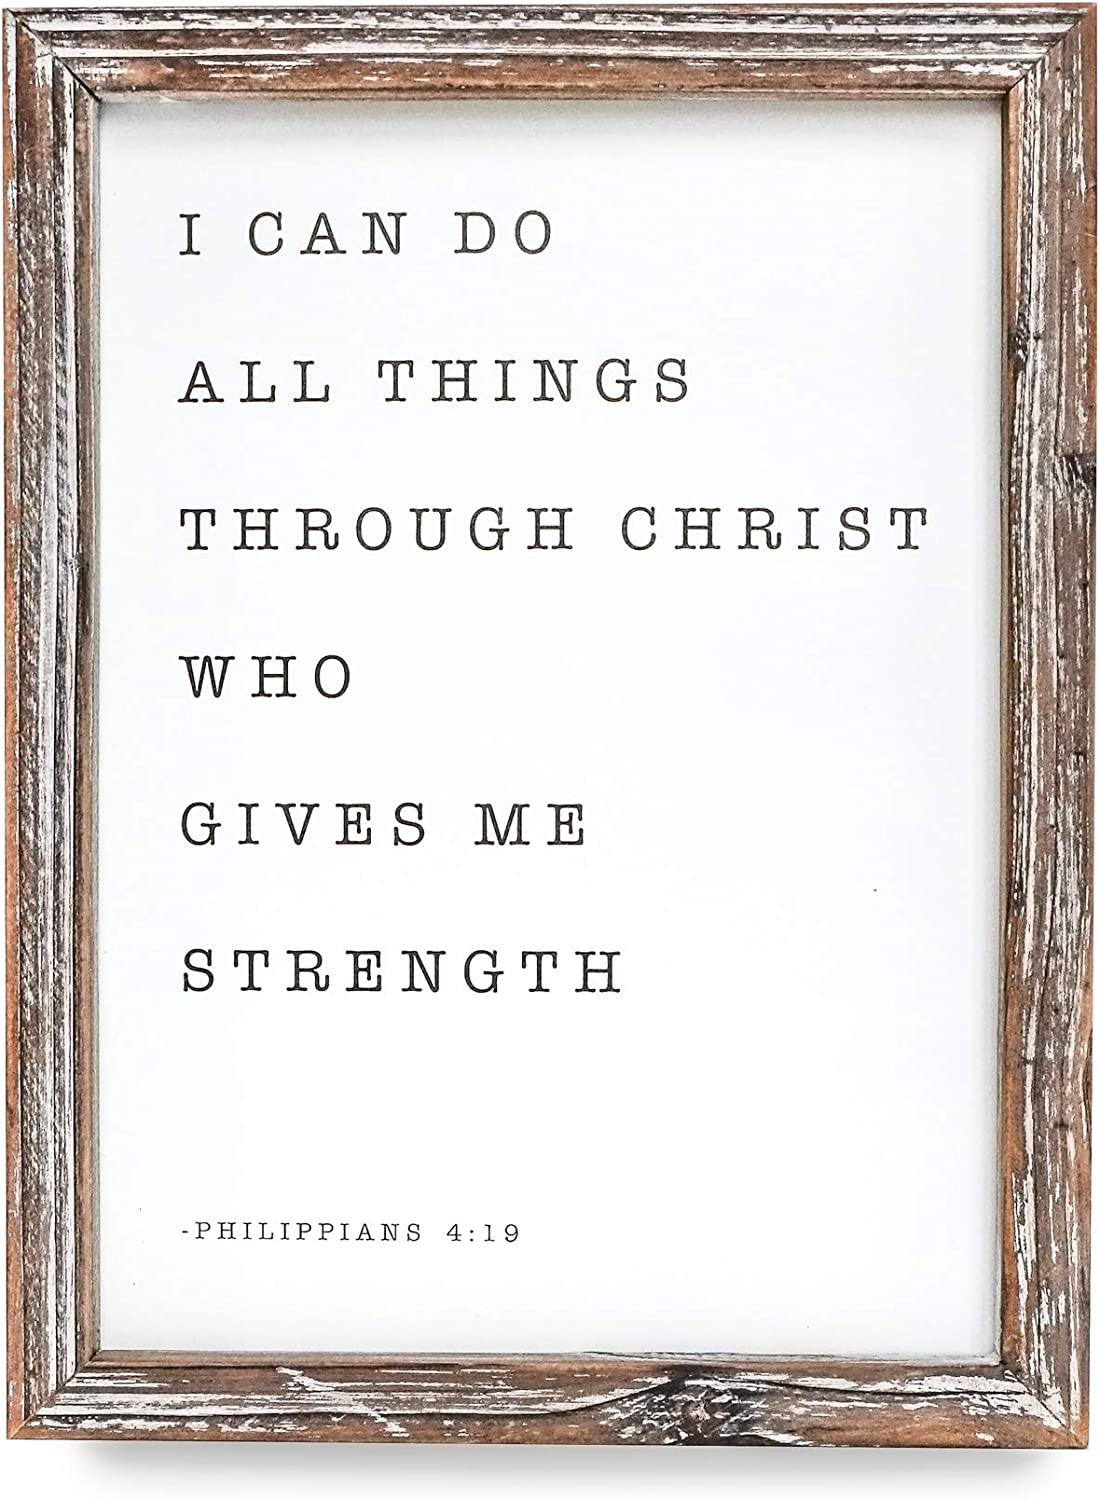 Sweet Water Decor I Can Do All Things Through Christ Who Gives Me Strength Wood Sign 9x12 Farmhouse Rustic Wall Decoration Religious Quote Philippians 4 13 Wall Hanging for Home, Kitchen, Living Room